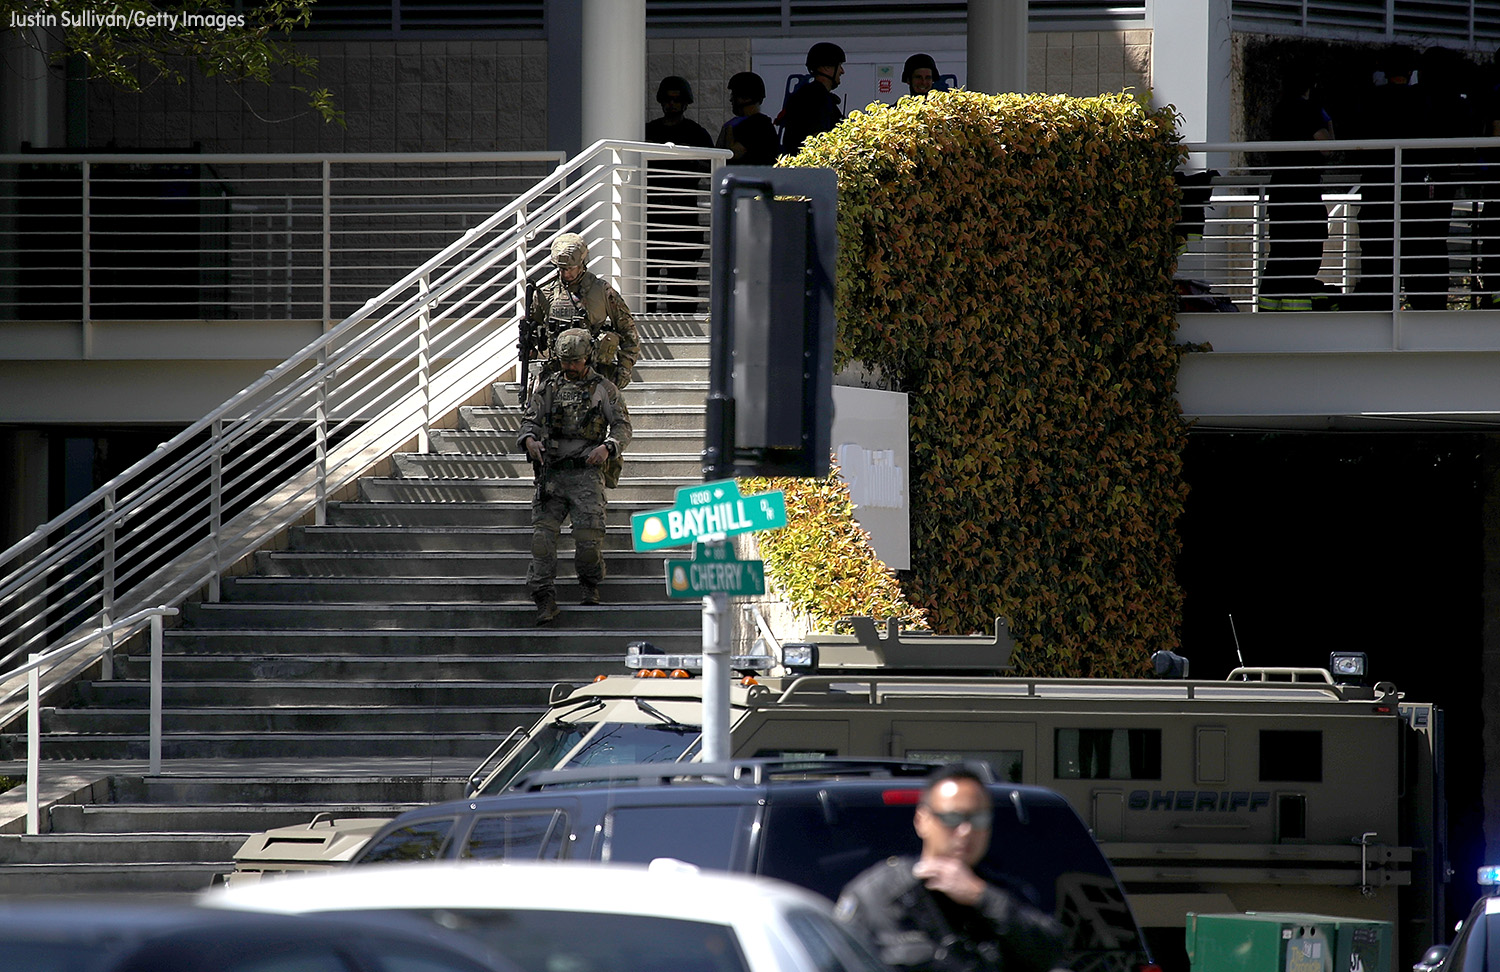 <div class='meta'><div class='origin-logo' data-origin='none'></div><span class='caption-text' data-credit='Justin Sullivan/Getty Images'>Police in tactical gear walk outside of the YouTube headquarters on April 3, 2018 in San Bruno, California.</span></div>